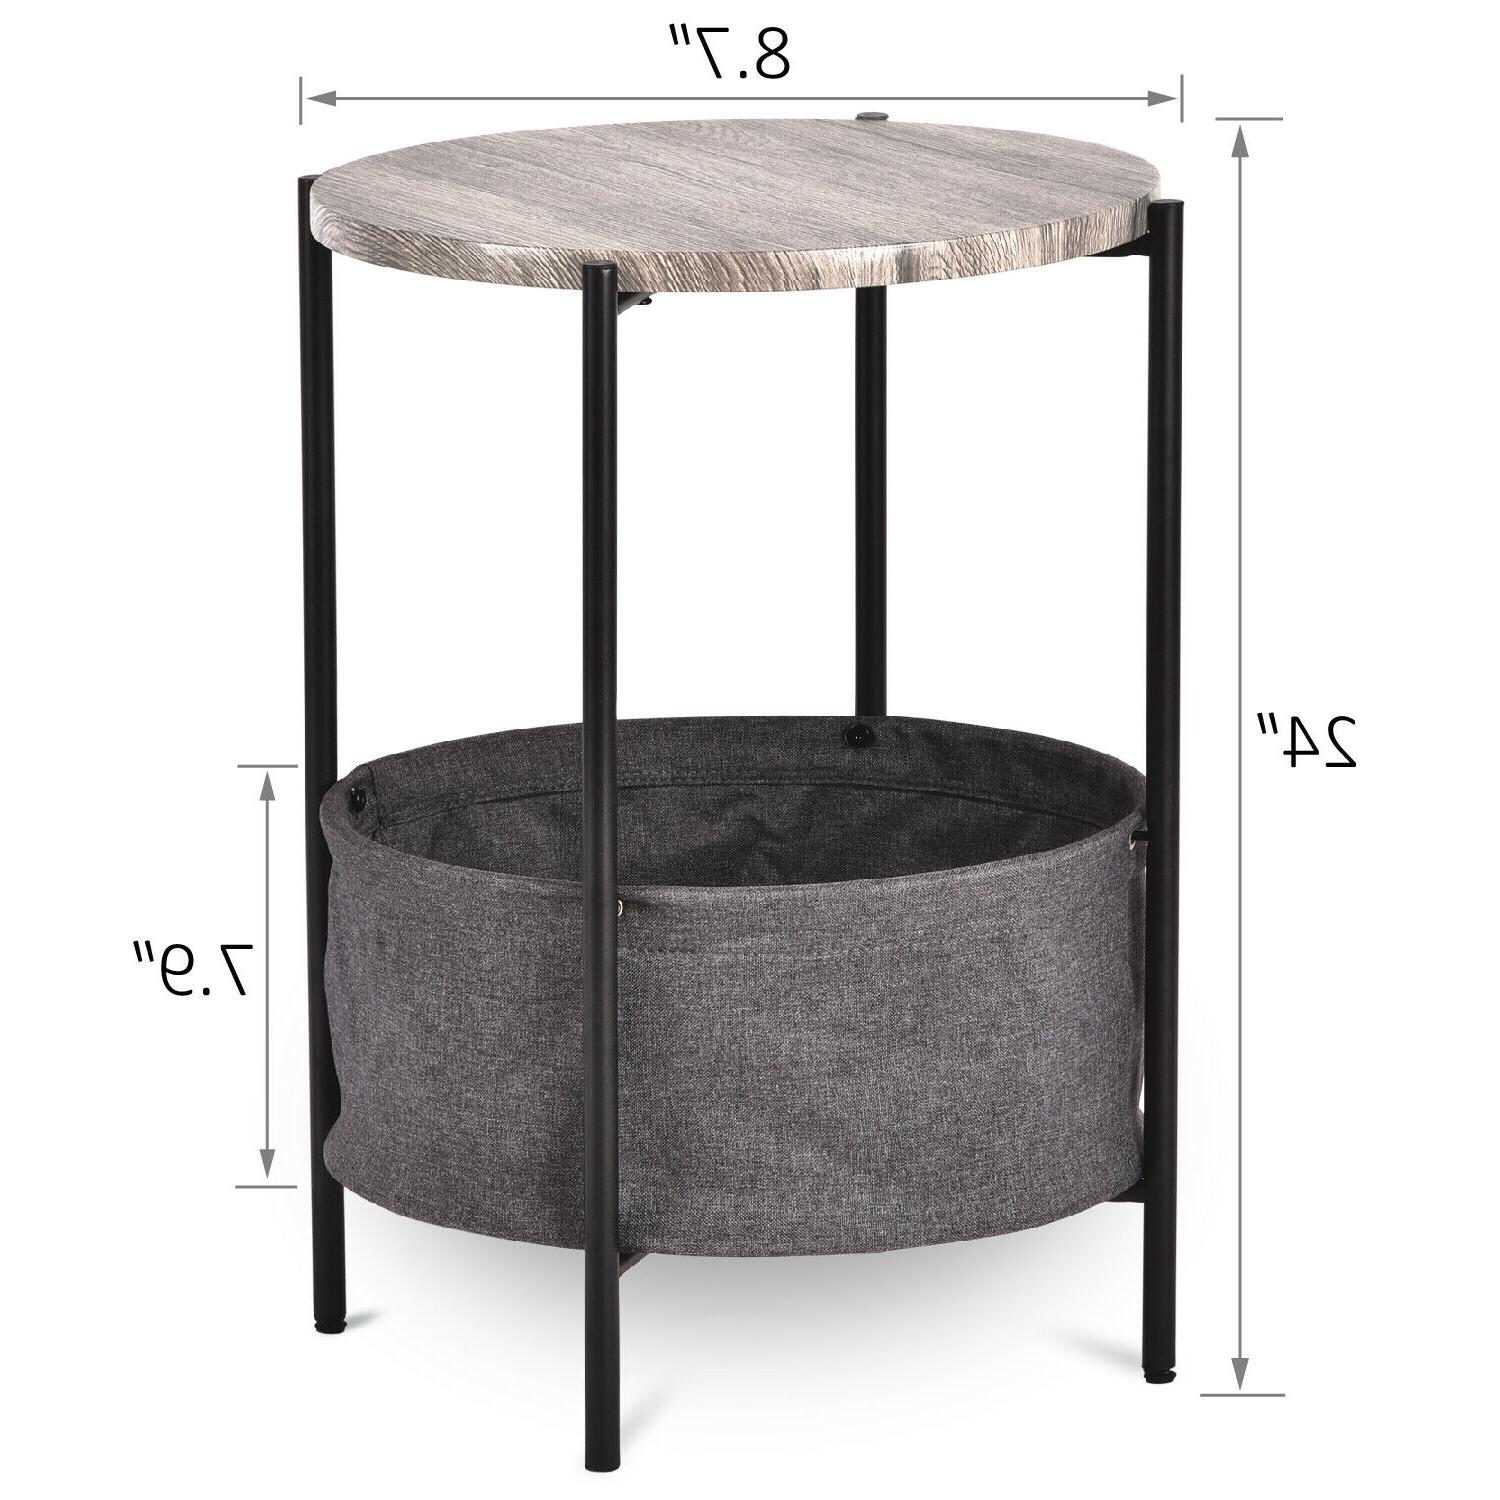 Modern Table with Basket Storage